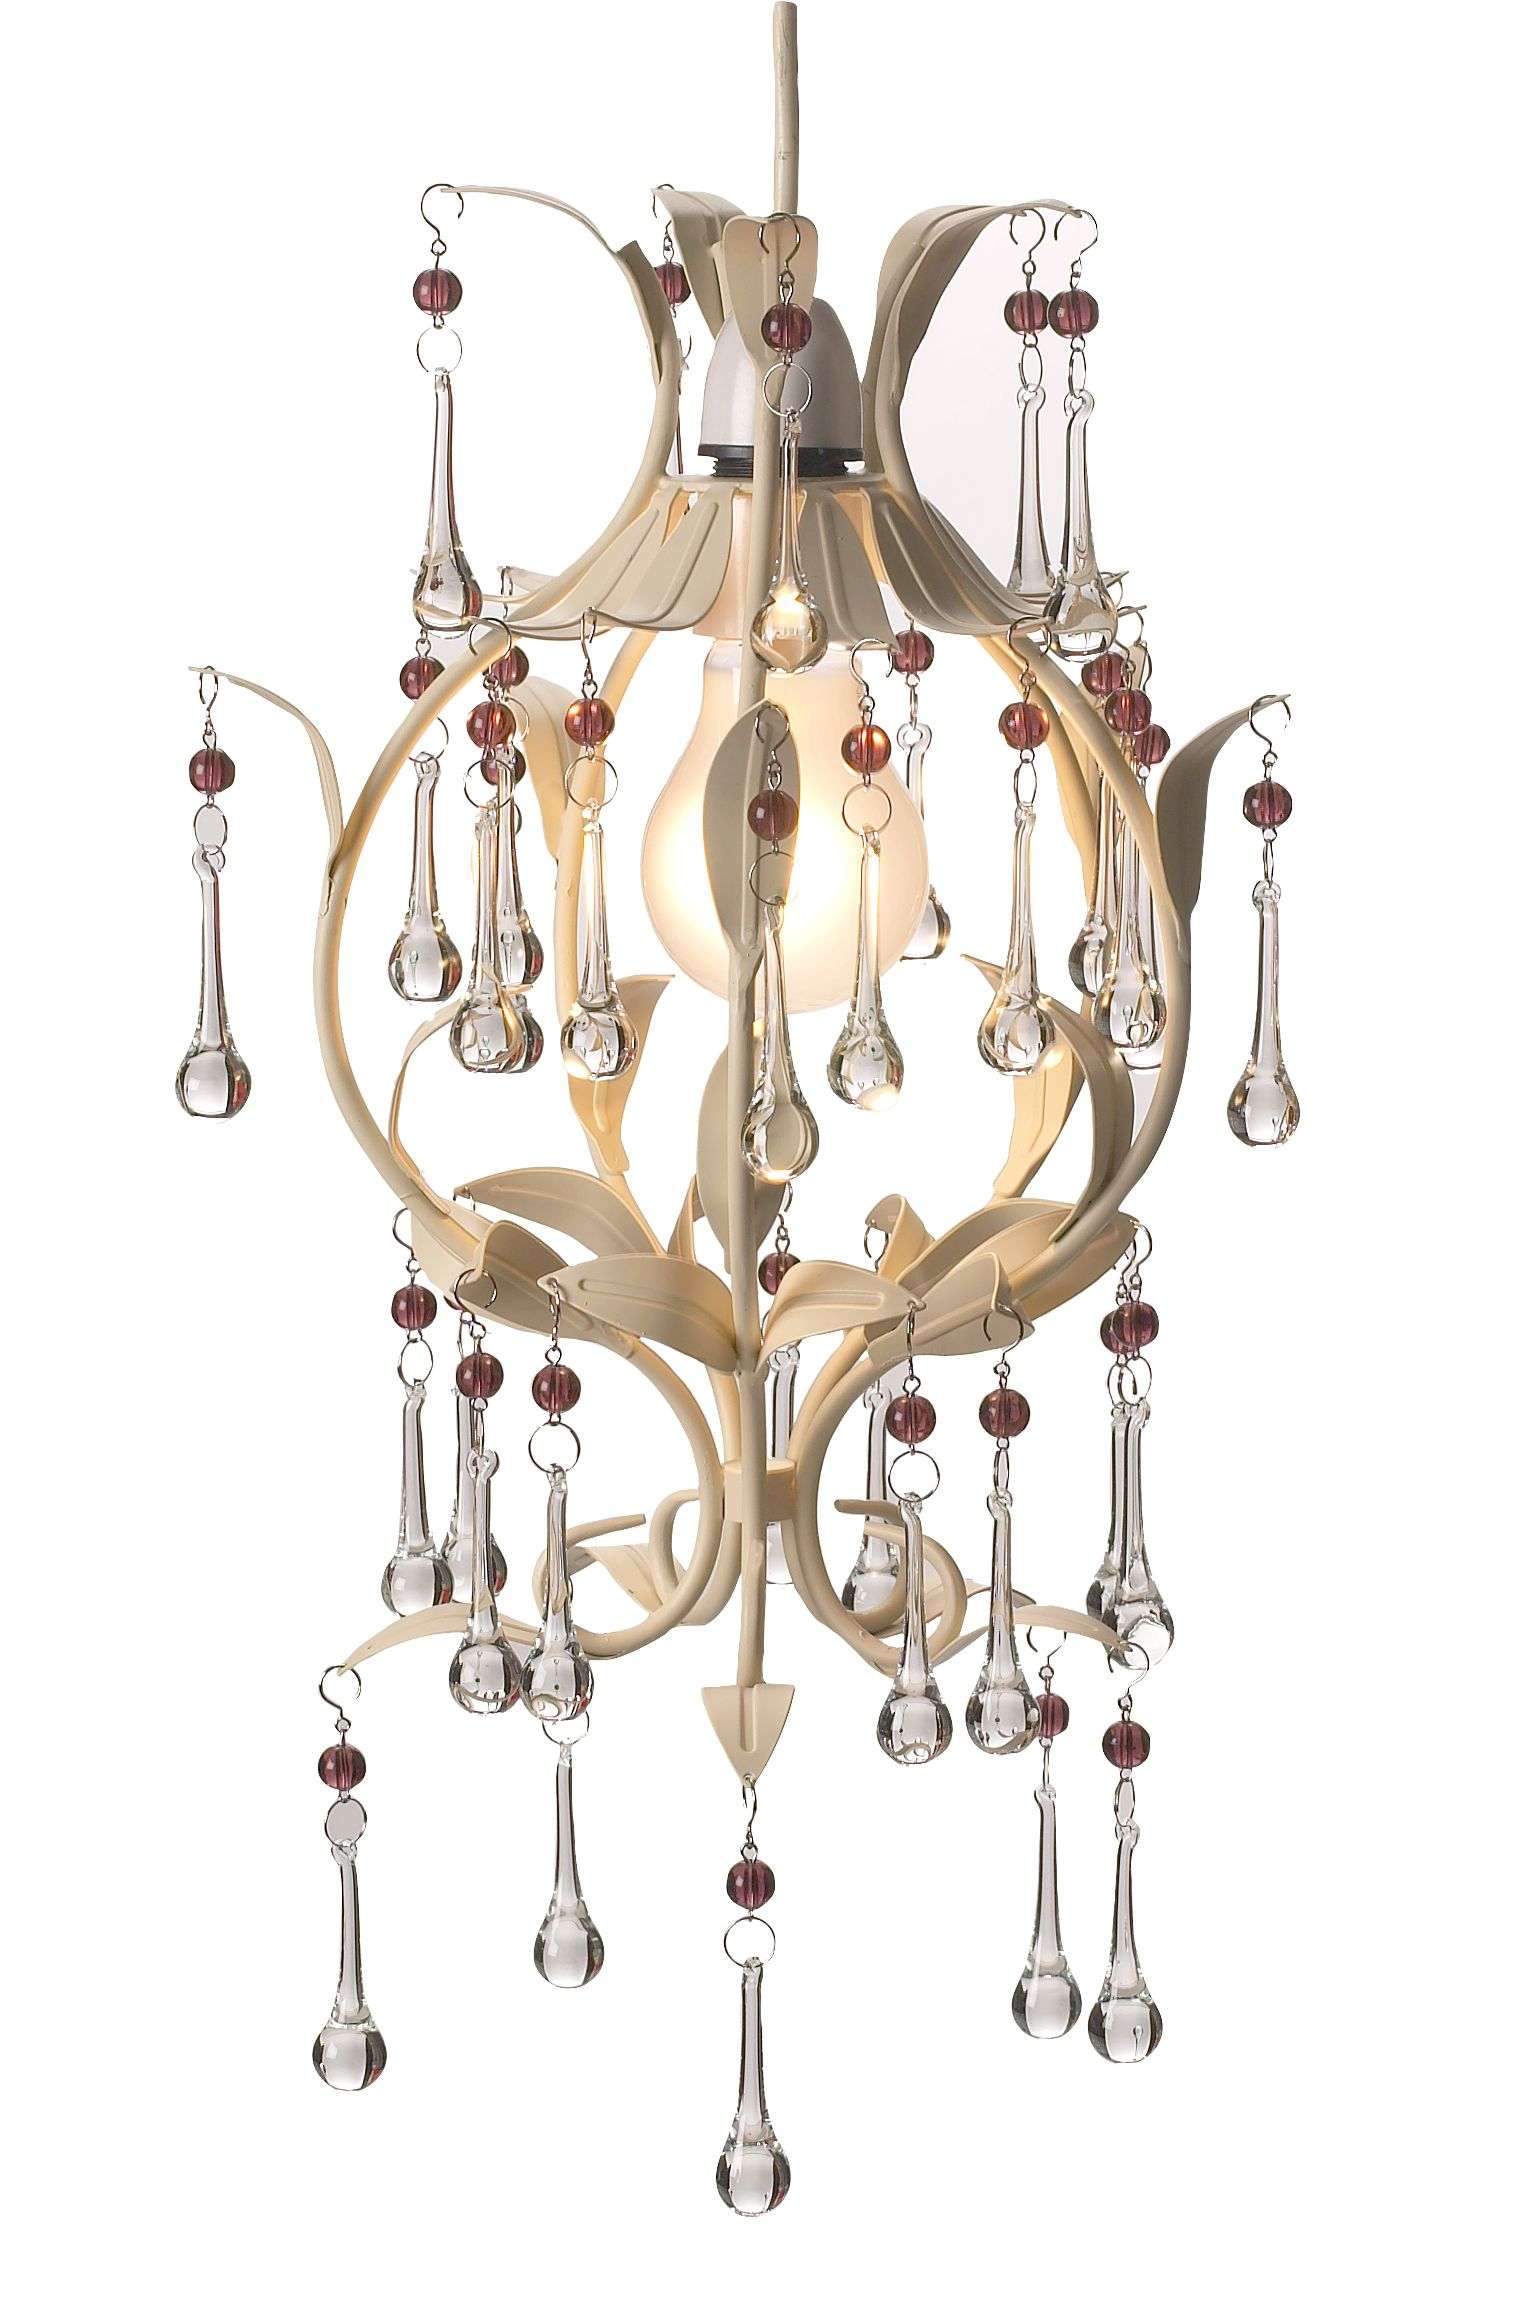 Ceiling Lights House Of Fraser : House of fraser banbury non electric ceiling pendant